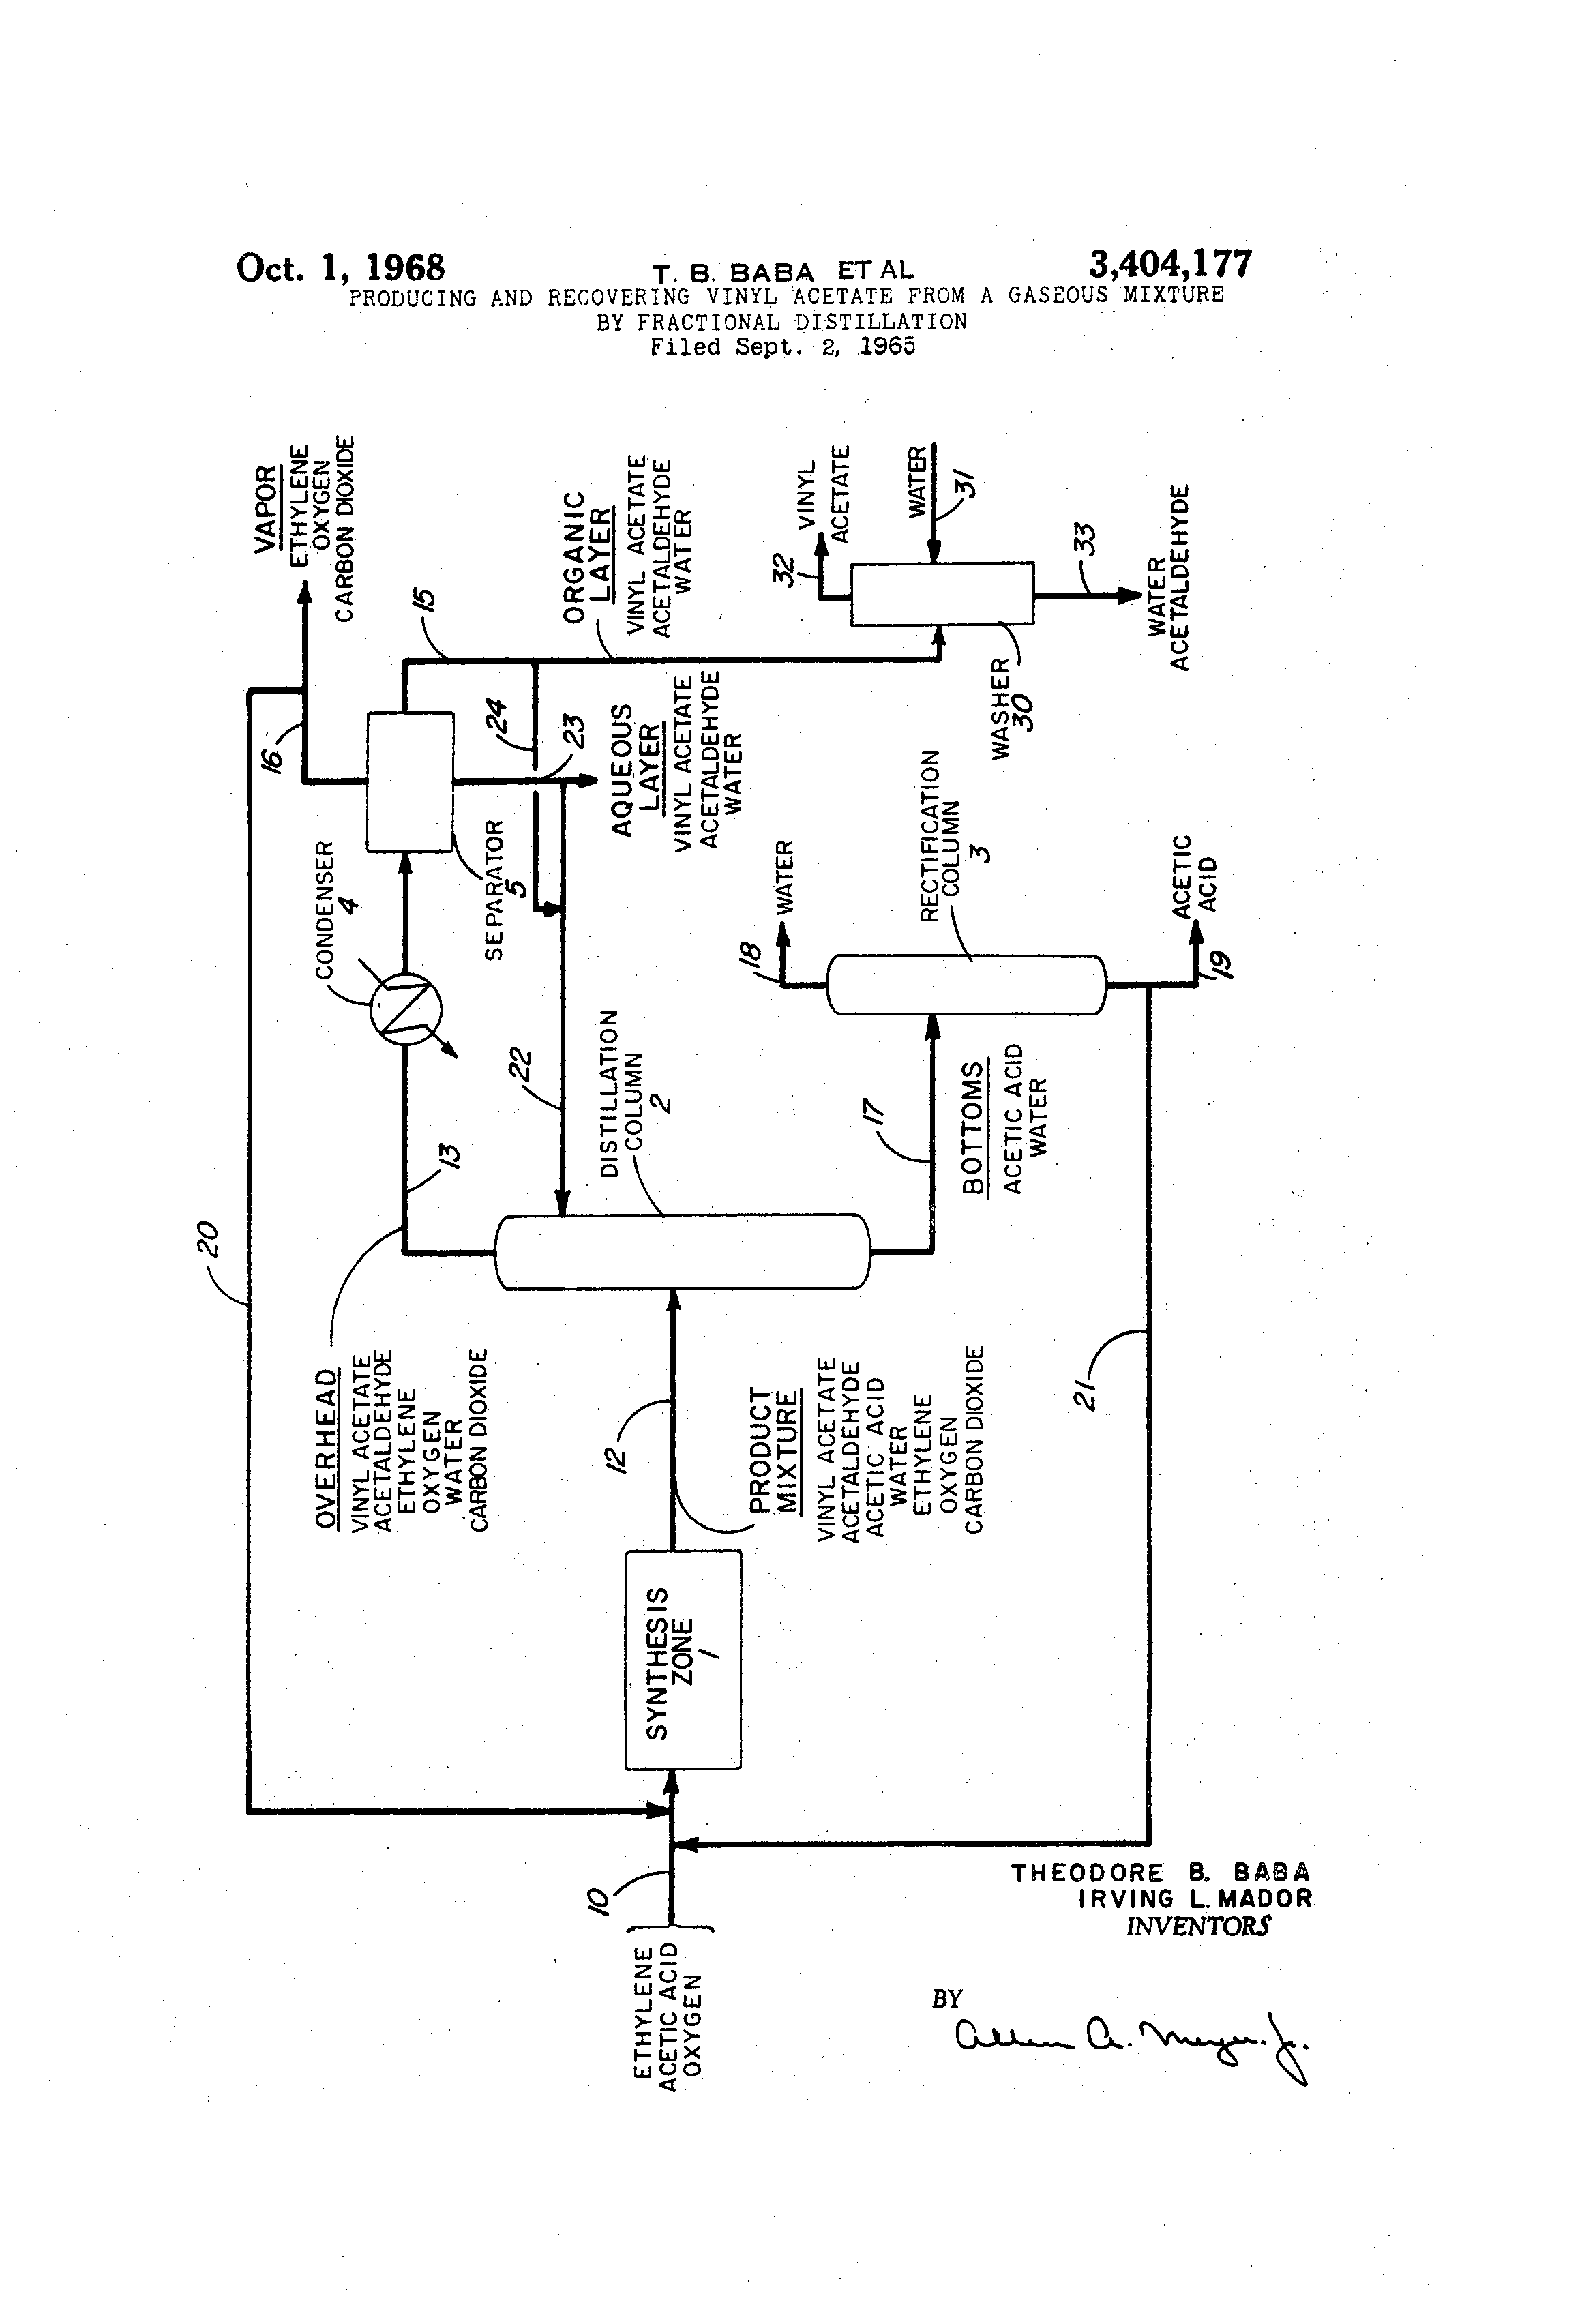 Vinyl Acetate Process Flow Diagram Great Installation Of Wiring Images Engineering Patent Us3404177 Producing And Recovering From A Rh Google Ac Business